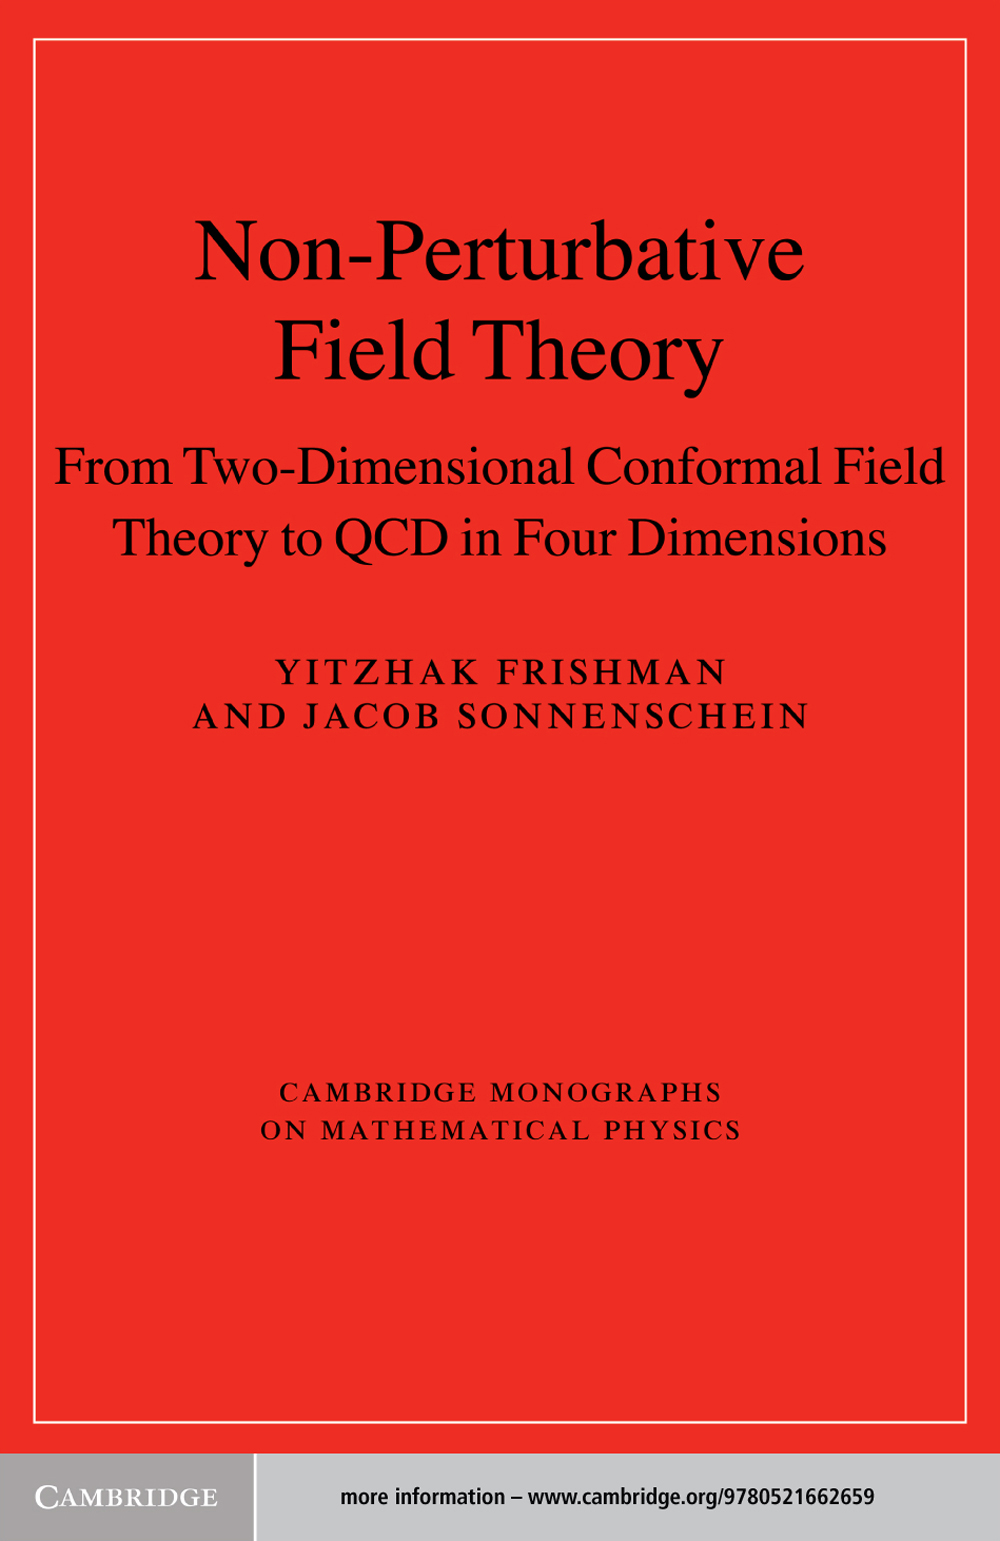 Non-Perturbative Field Theory From Two Dimensional Conformal Field Theory to QCD in Four Dimensions